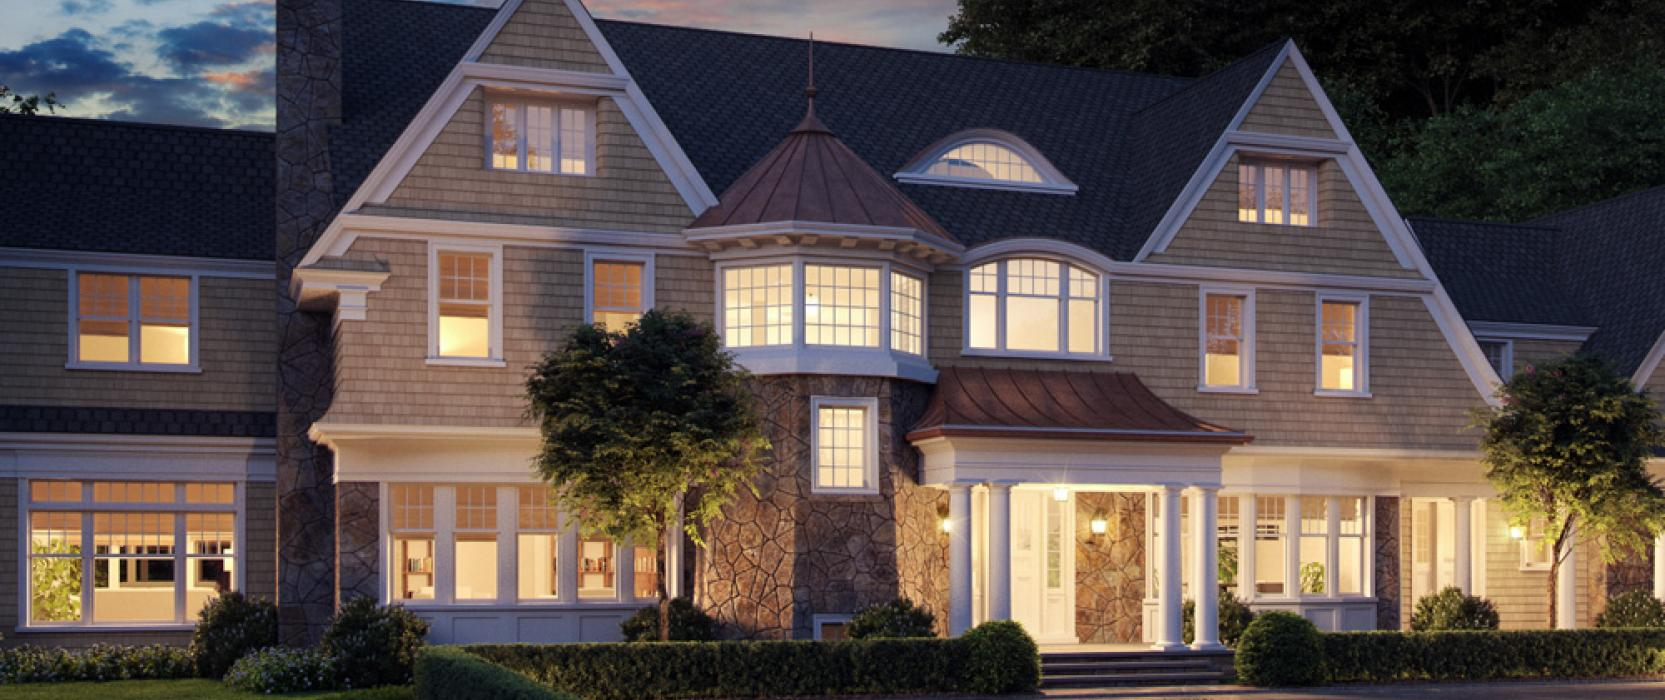 8.6-Million Home by Sanford Custom Builders, Jan Gleysteen & The MacDowell Company